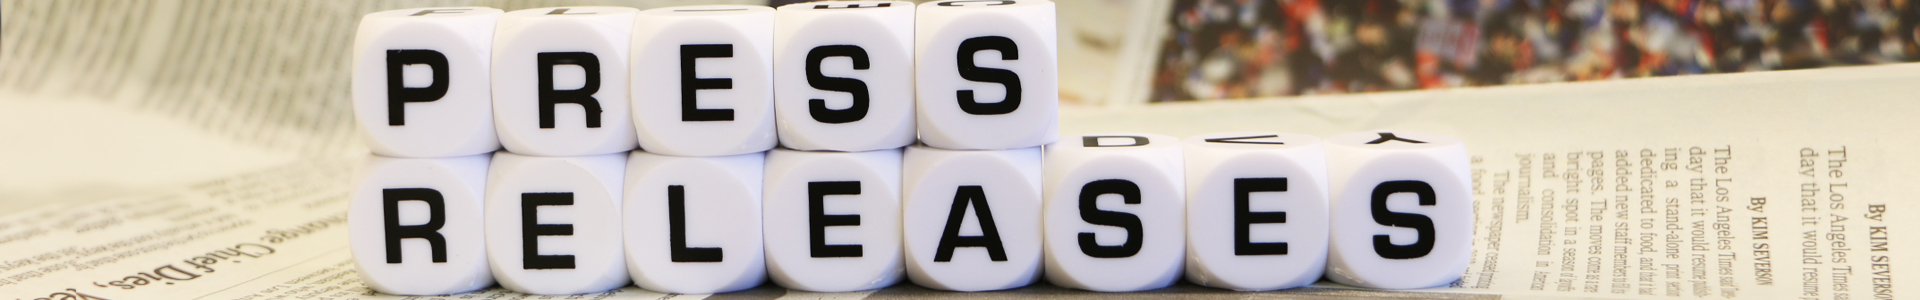 dices with words of Press Release on them